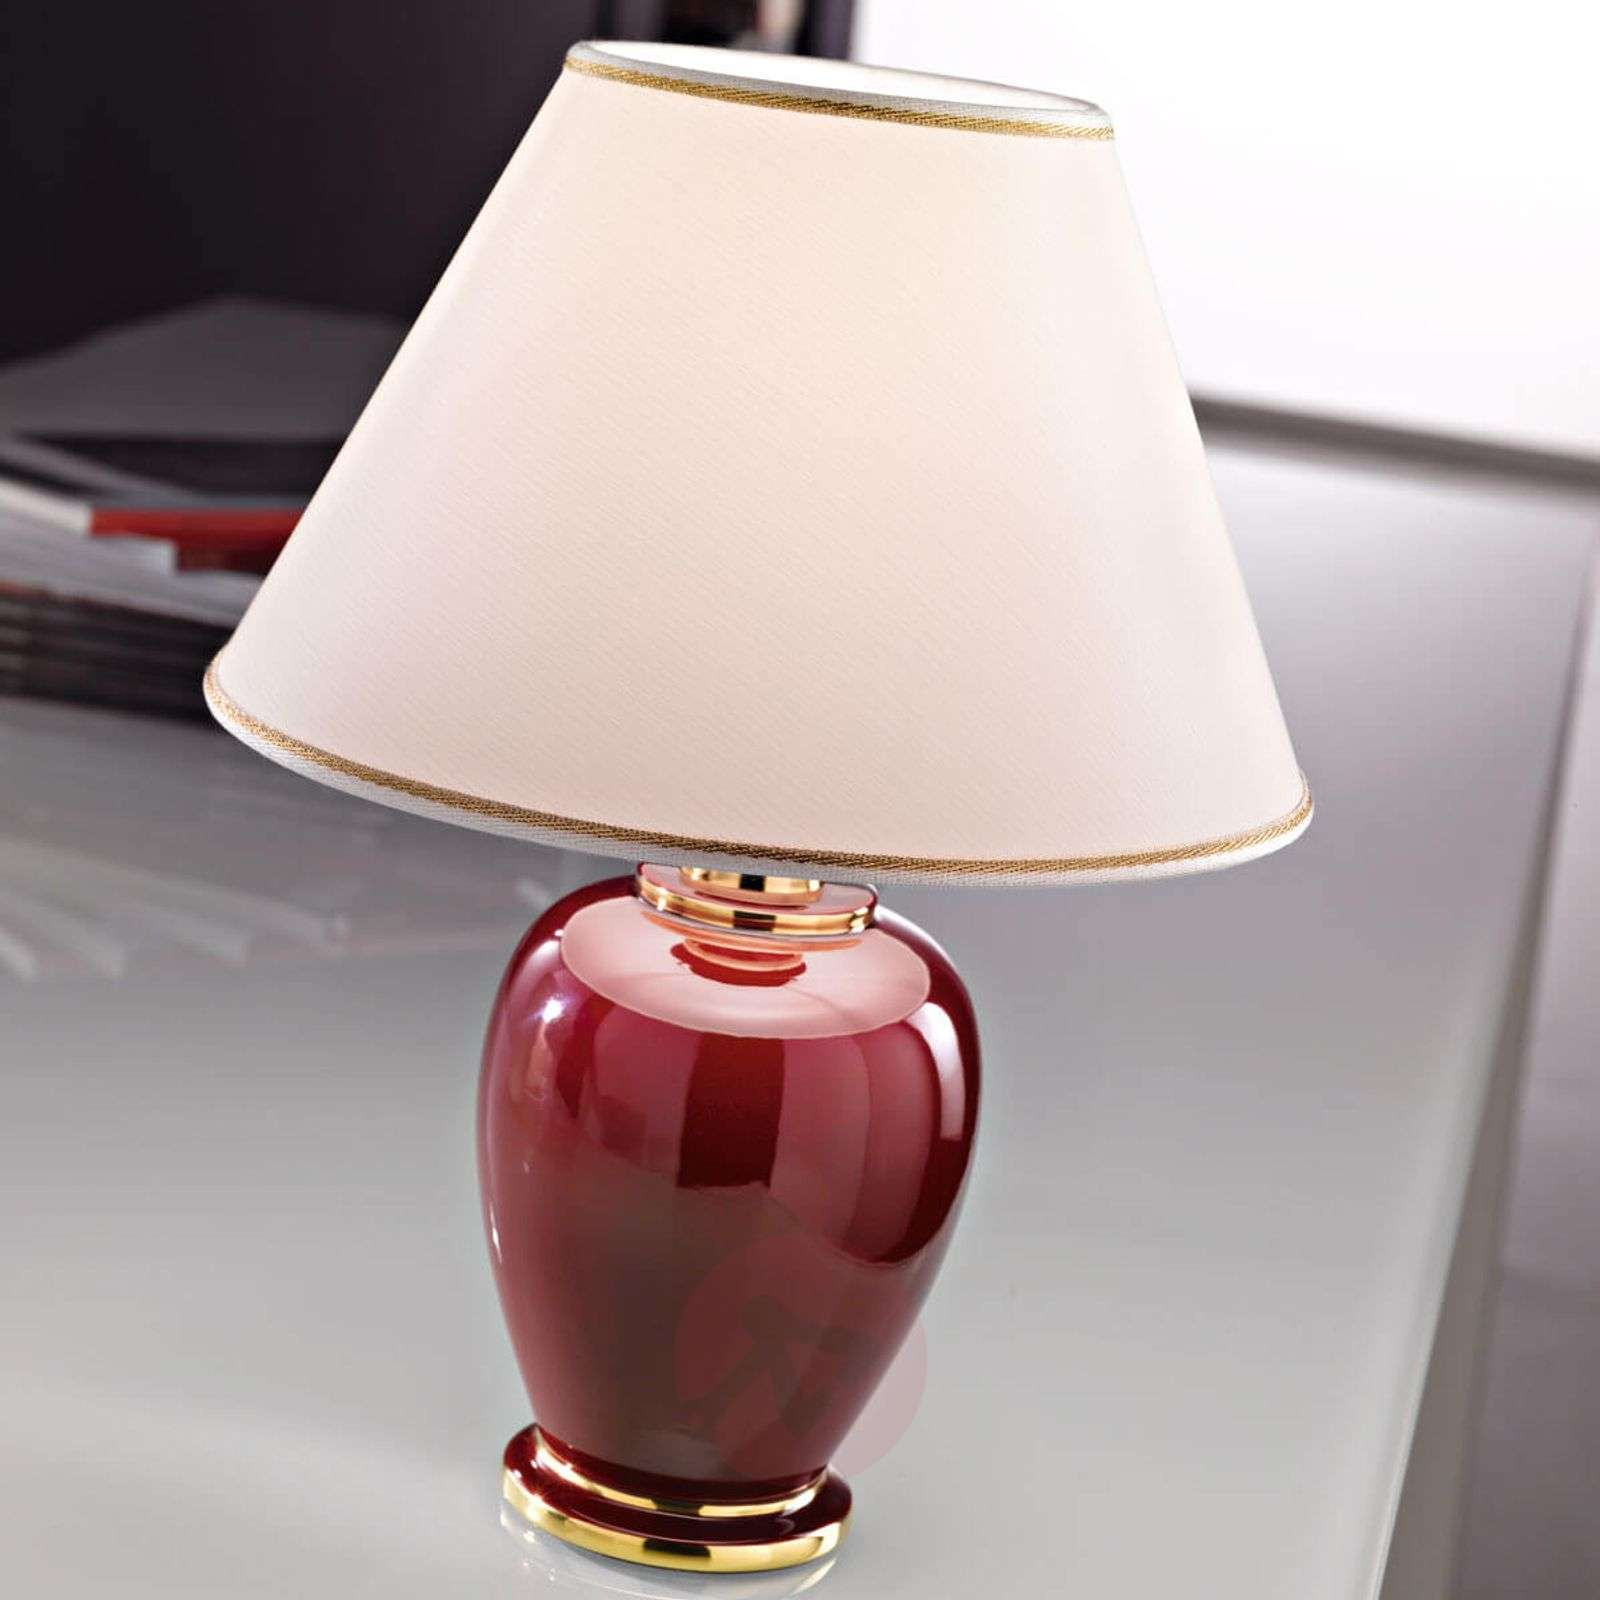 Gracieuse lampe à poser Bordeaux-5560175X-01